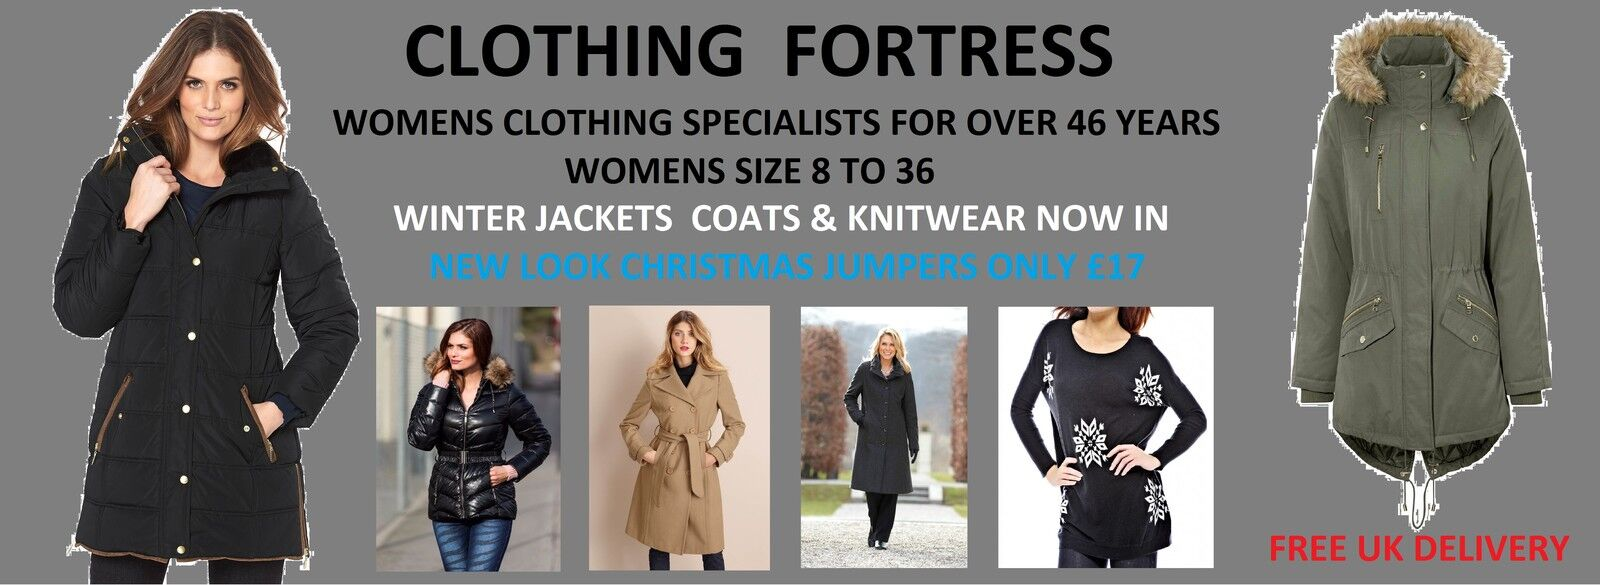 Clothing Fortress